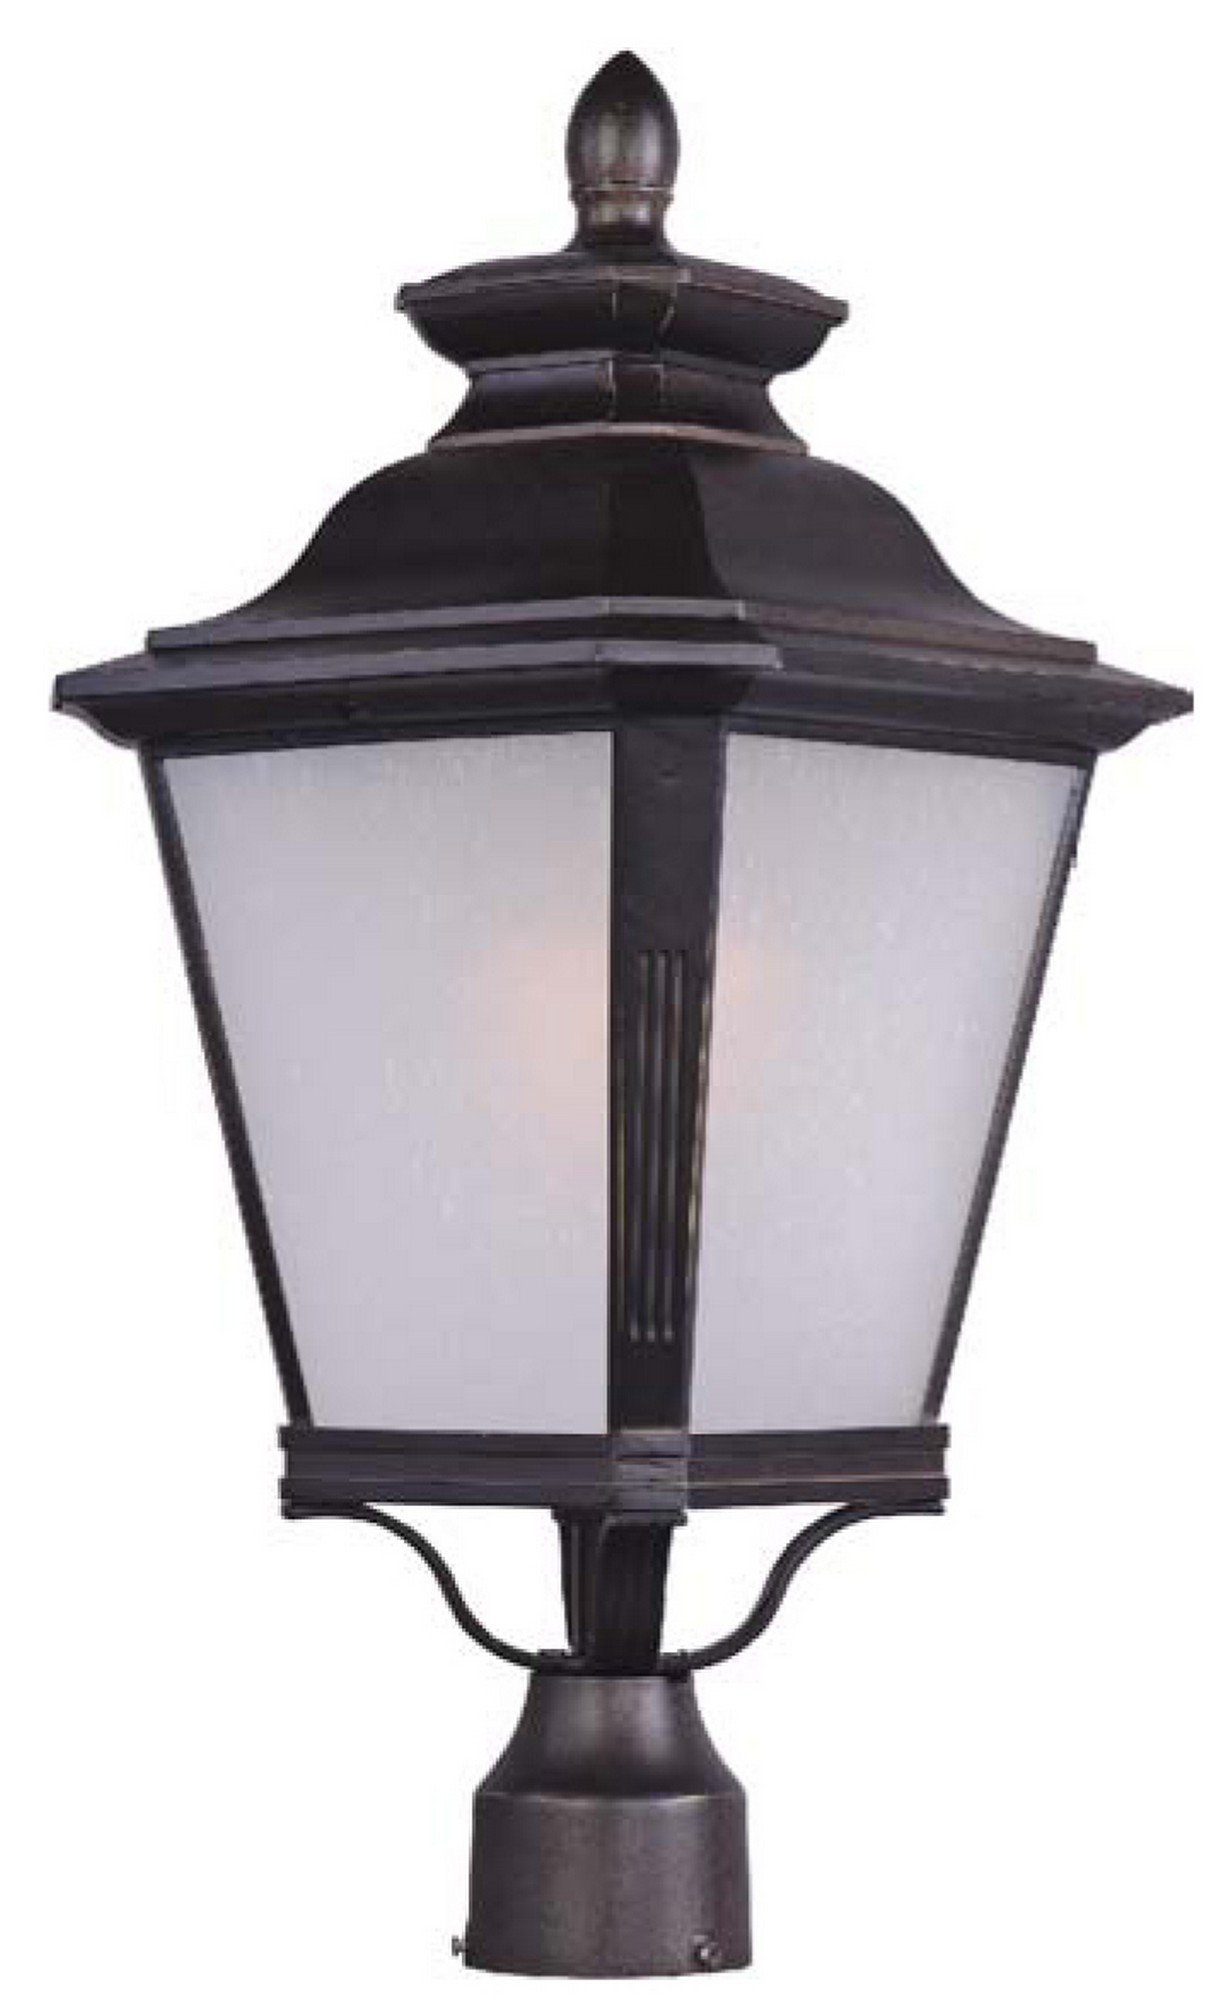 Maxim Lighting 1120FSBZ Knoxville-Outdoor Pole/Post Mount 1-Light Lantern by Maxim Lighting